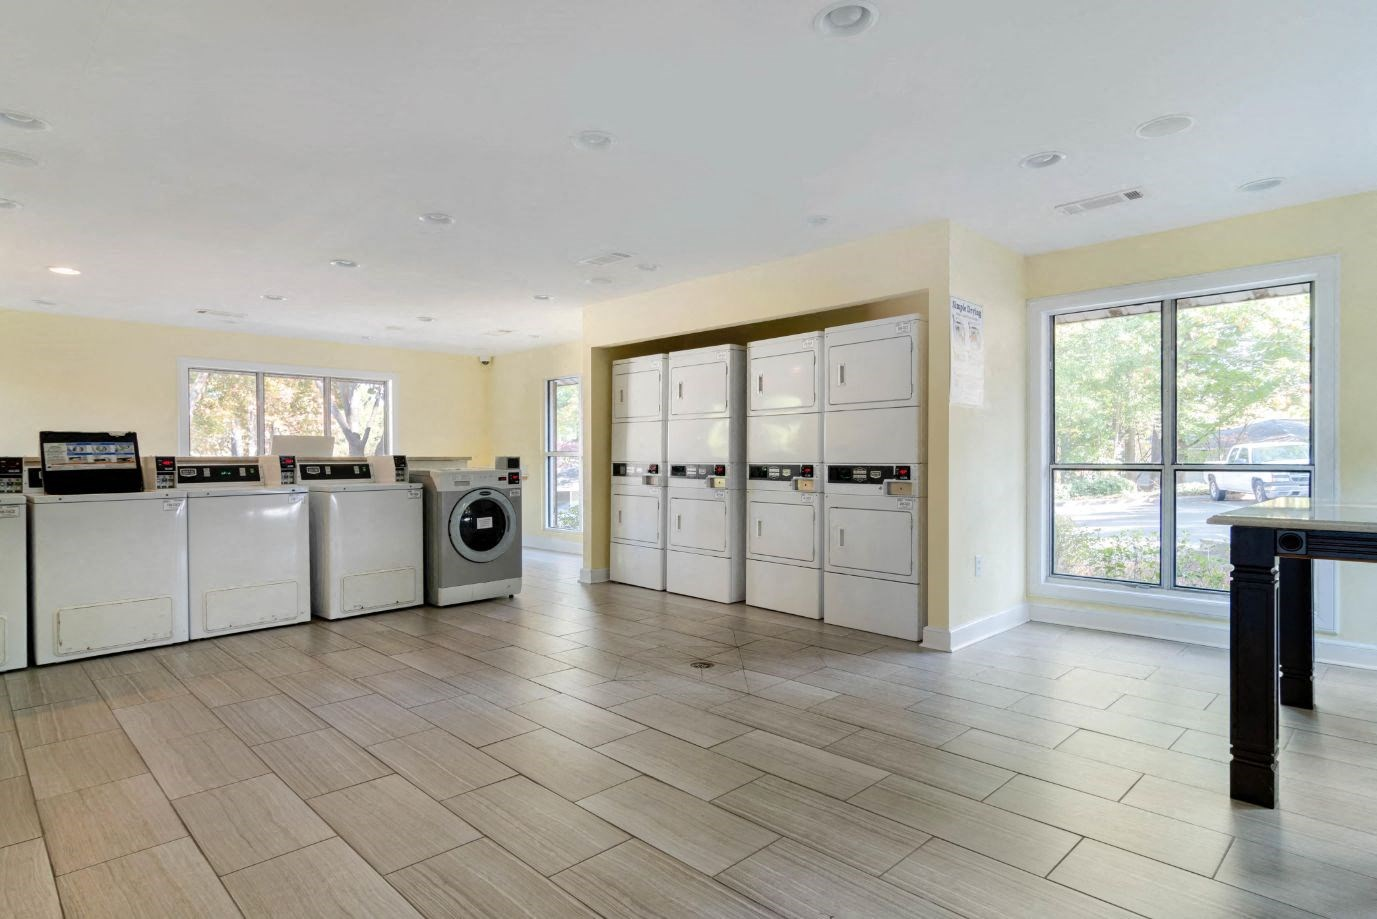 Laundry Service Center with Hardwood Style Flooring  and Machines